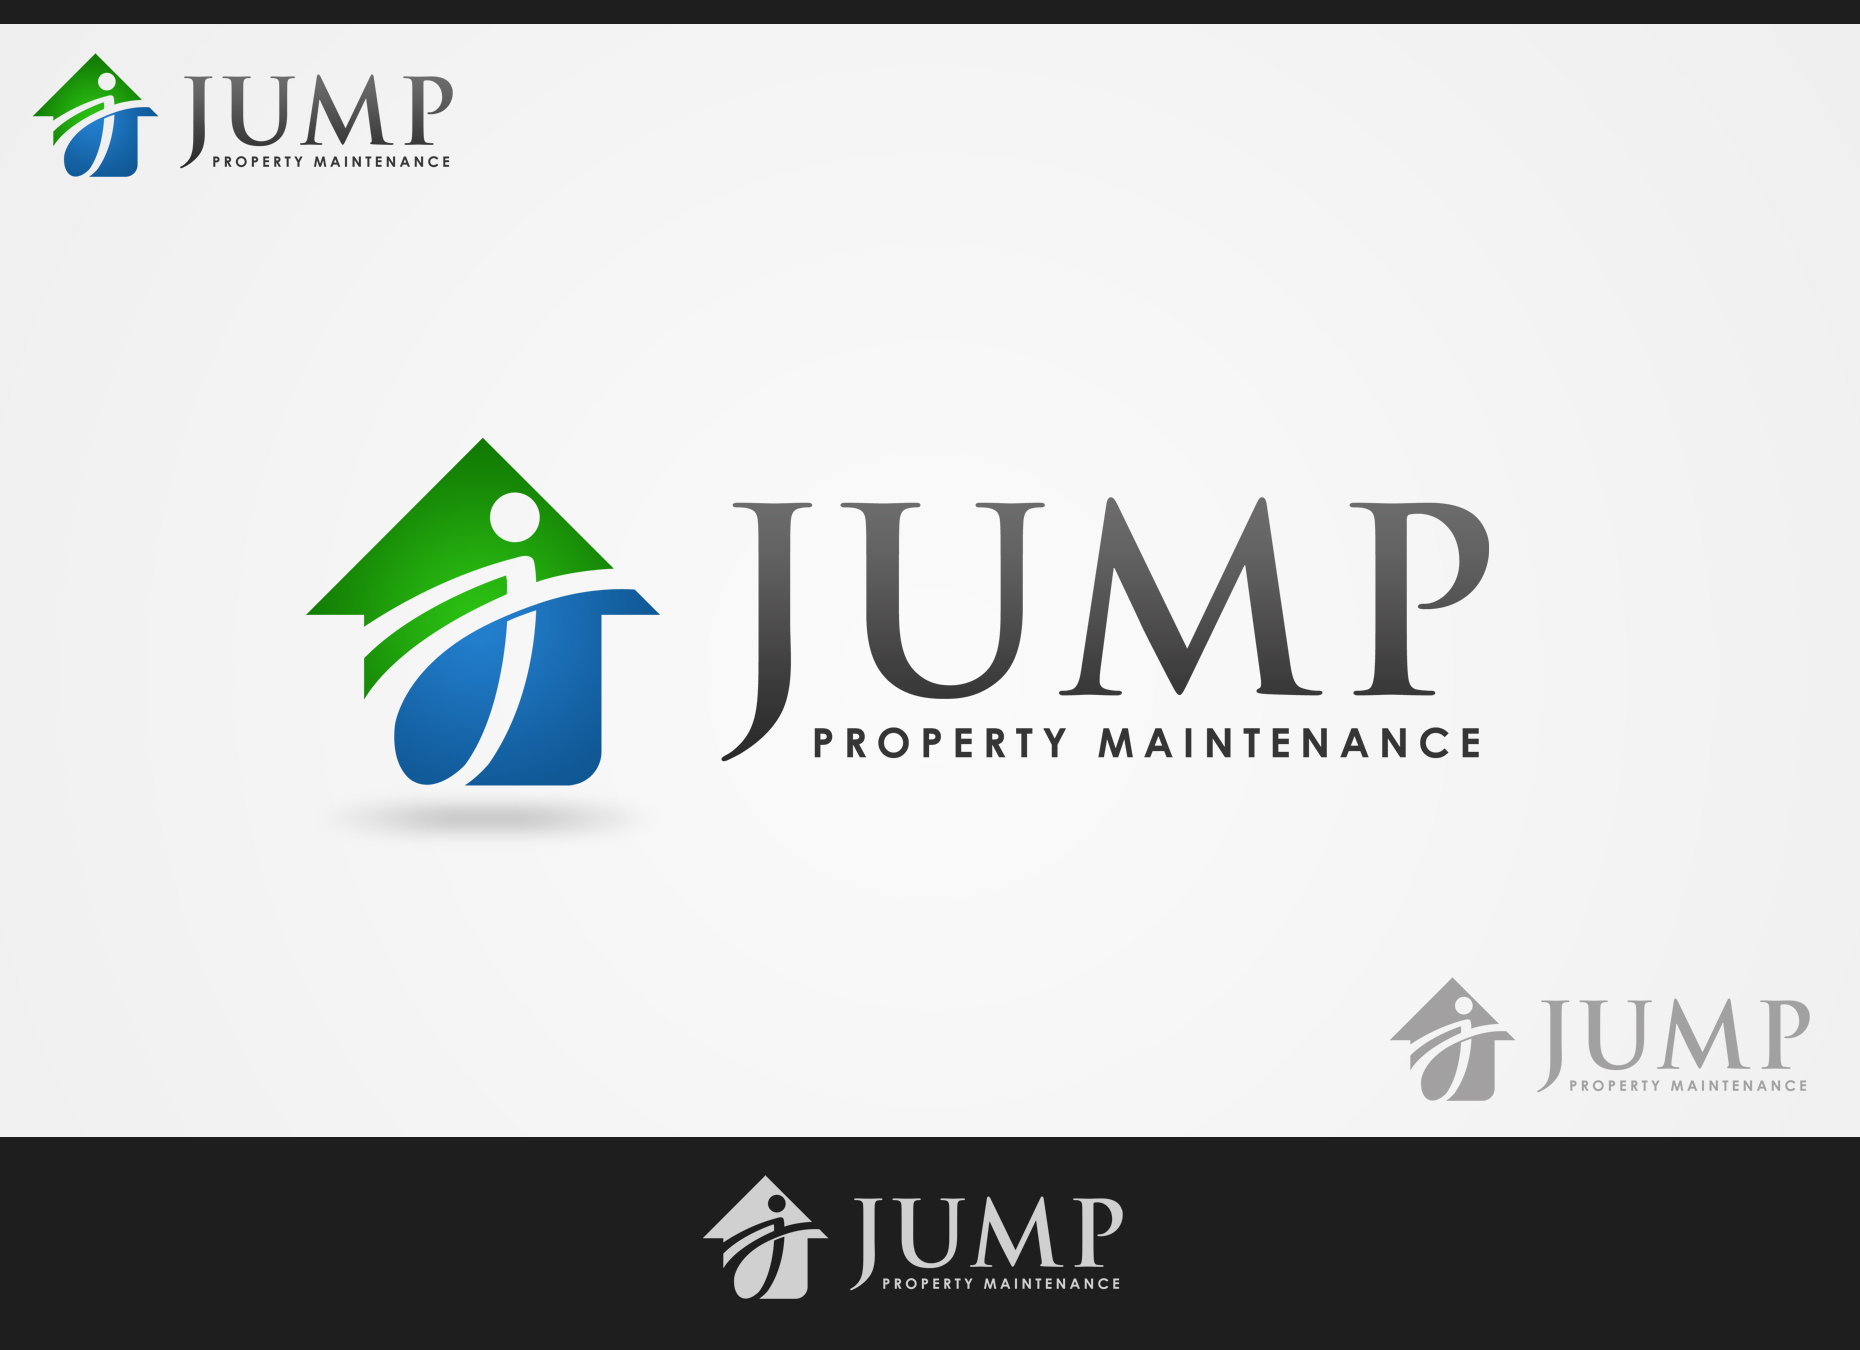 Logo Design by omARTist - Entry No. 79 in the Logo Design Contest Creative Logo Design for Jump Property Maintenance.